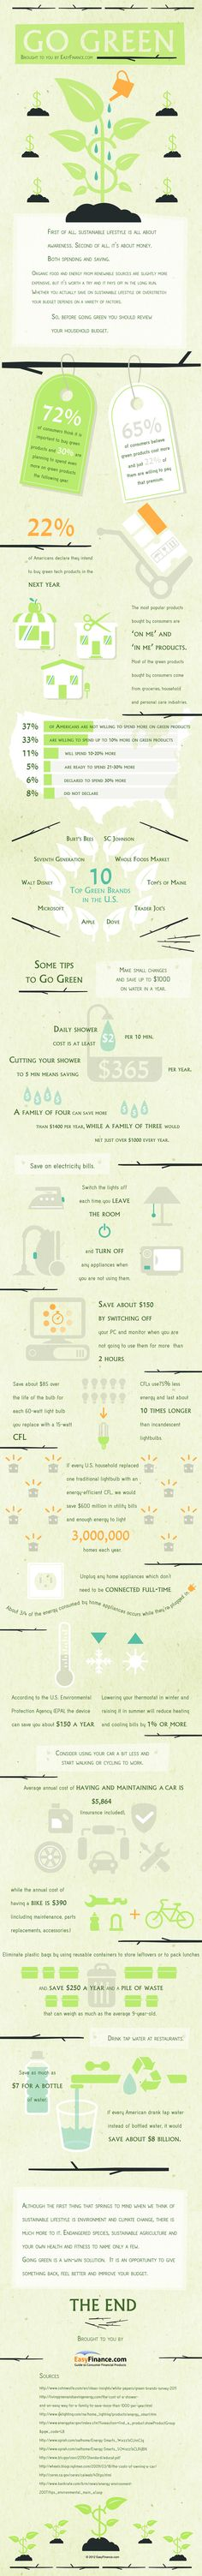 How much money do you actually save by being green? {Infographic} - ecokaren